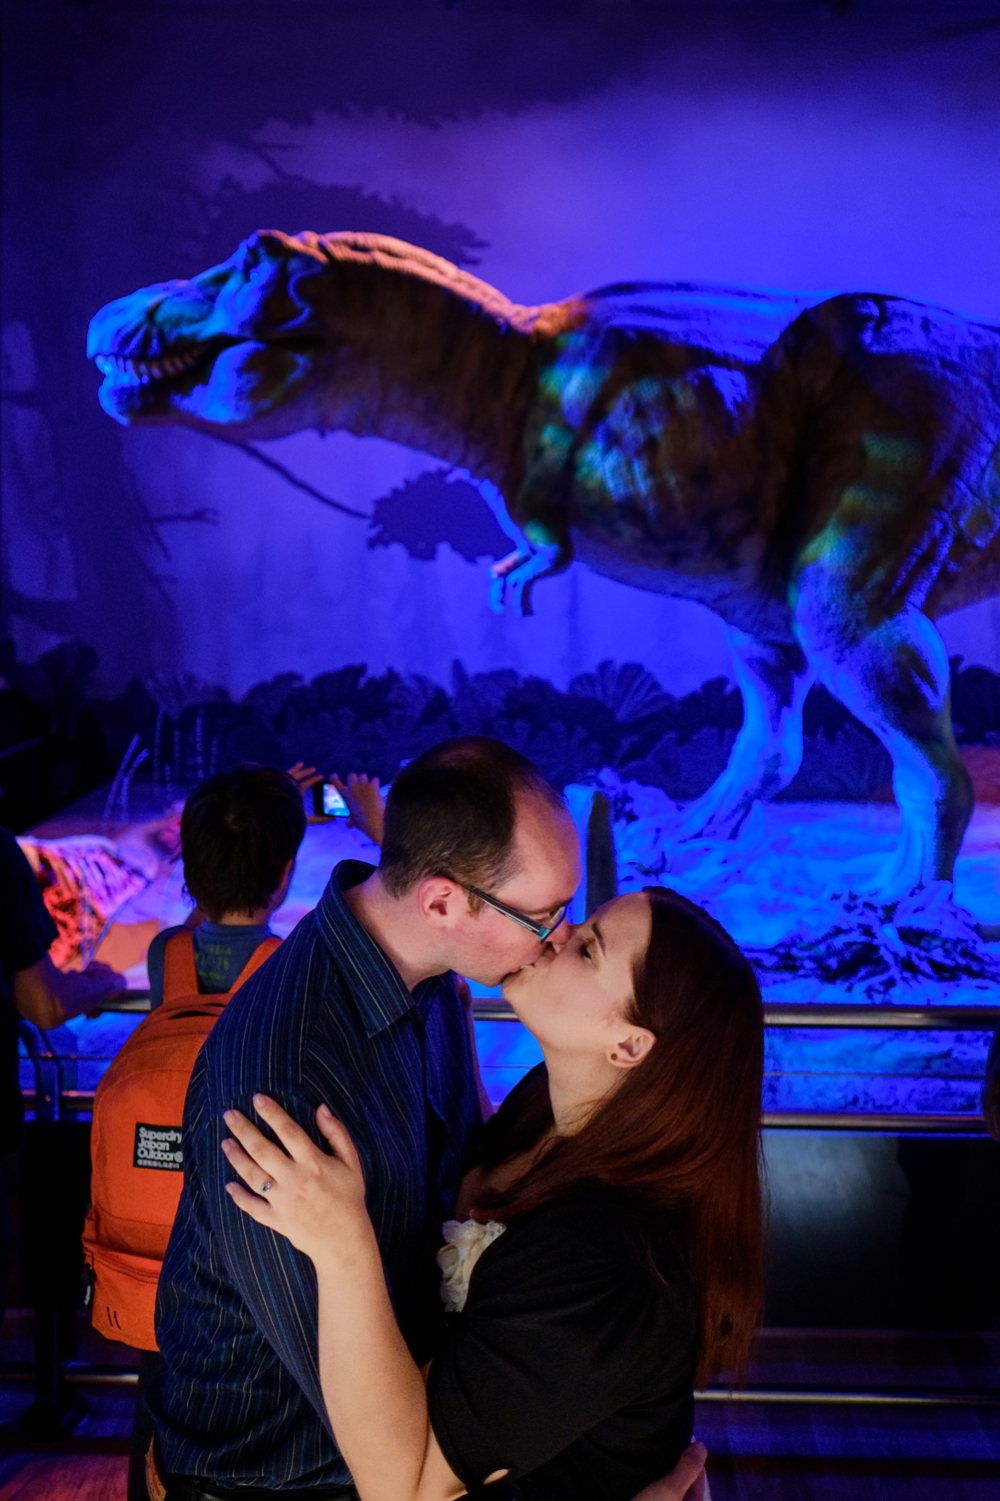 natural-history-museum-engagement-shoot-london-engagement-shoot-peacock-obscura-photography-9